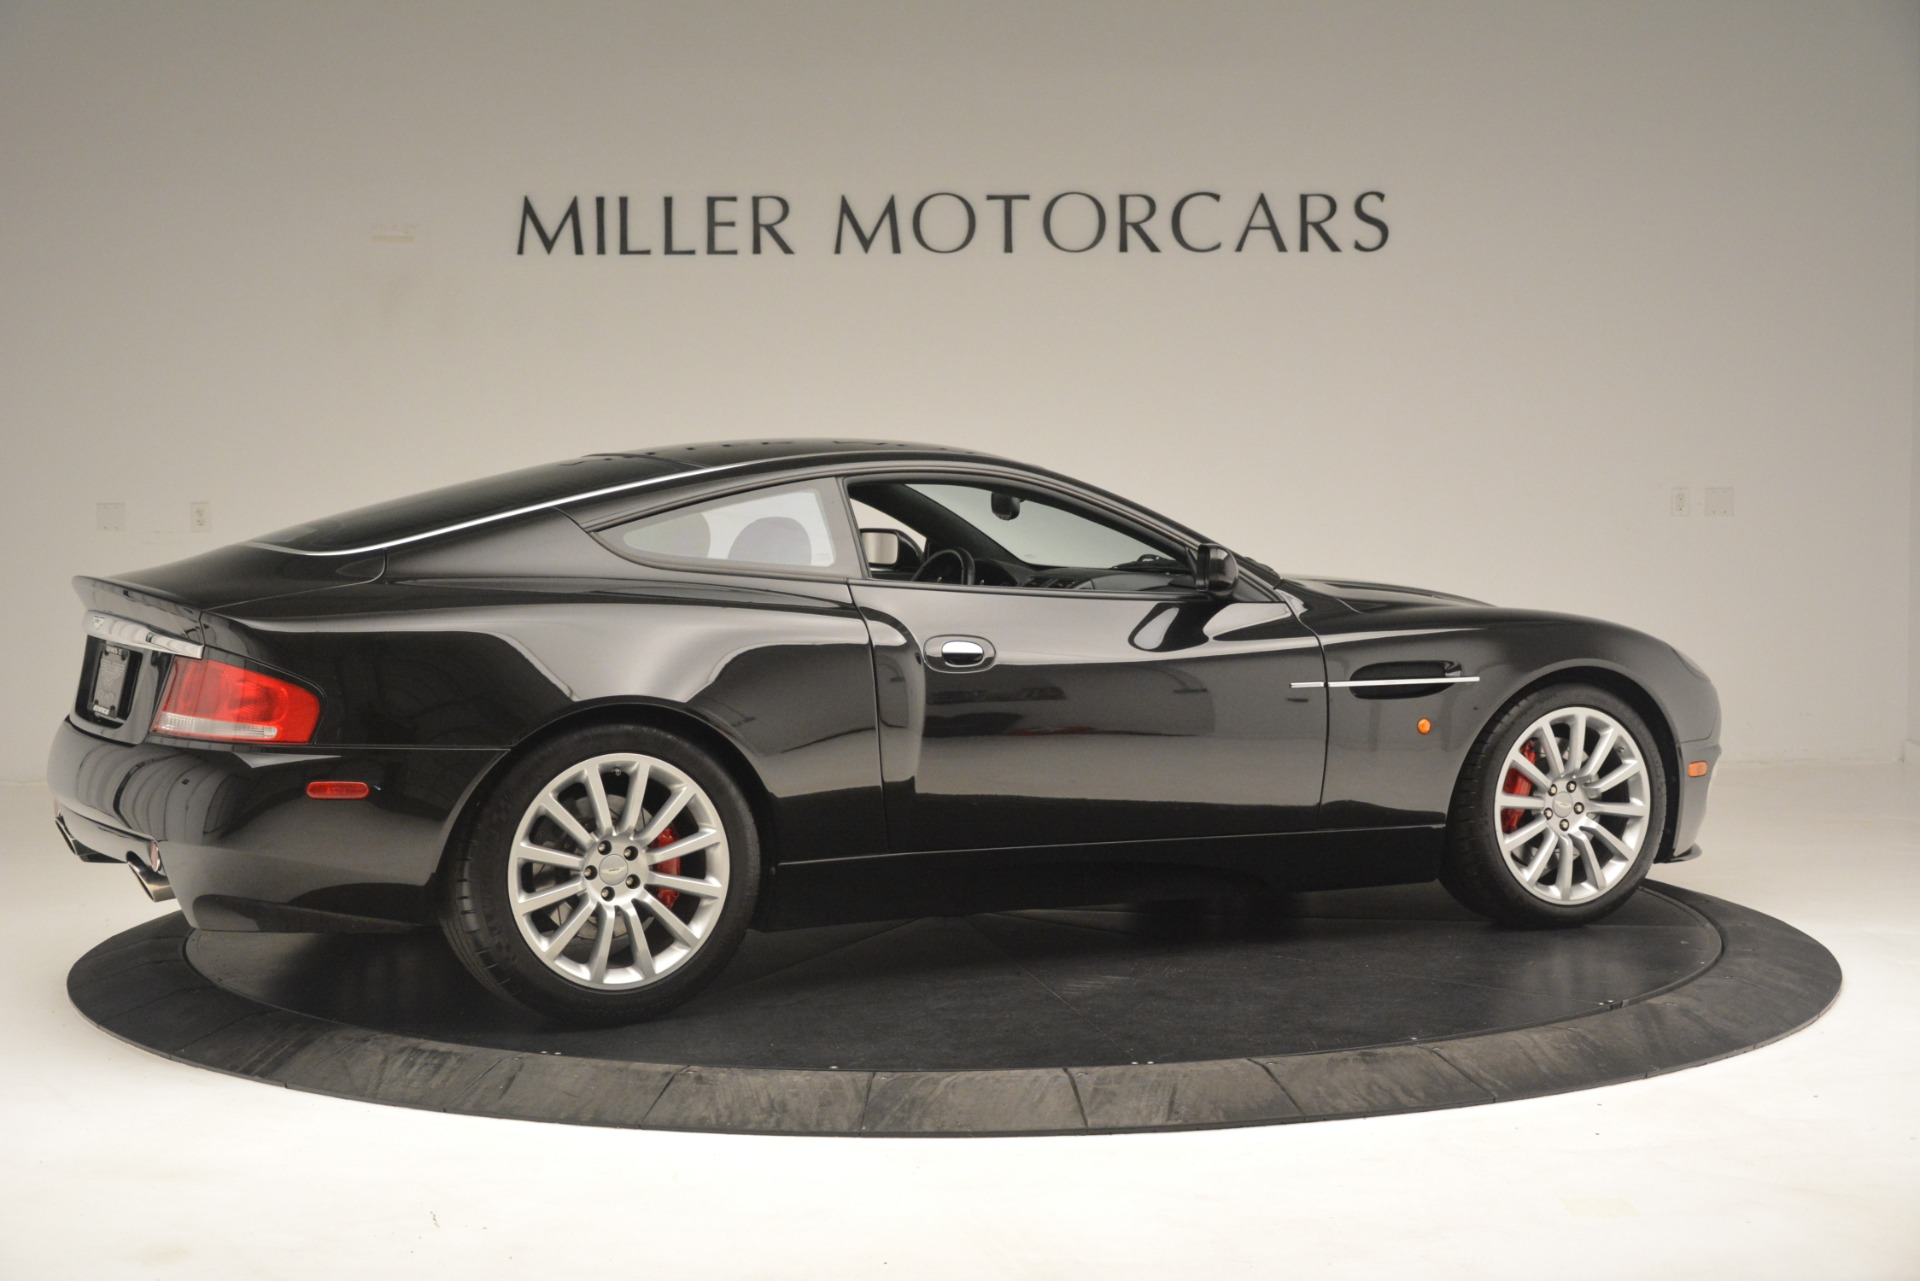 Used 2004 Aston Martin V12 Vanquish  For Sale In Greenwich, CT 3160_p8